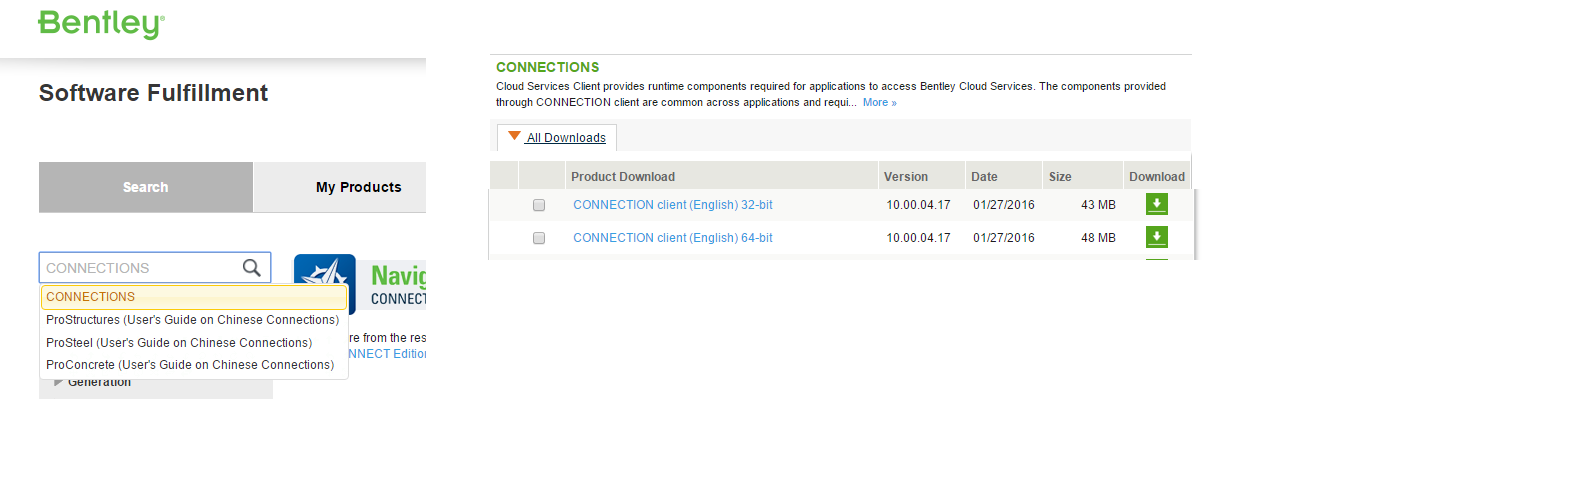 Bentley Connect Didn T Update By February 6th Cloud And Web